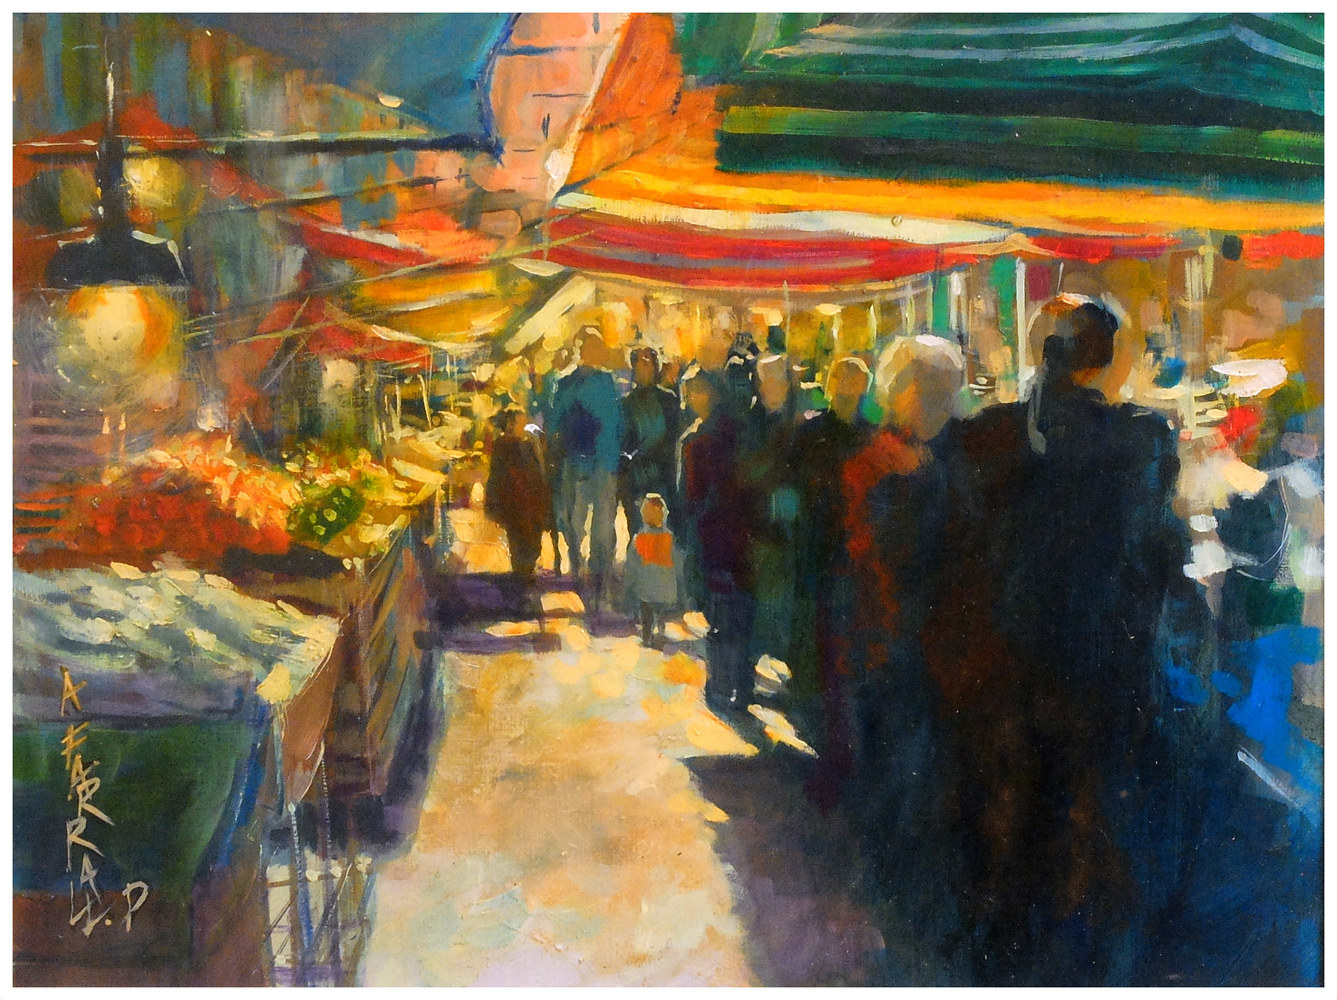 Market Day, Sicily, oil on board, 30x40cm by Anne Farrall Doyle